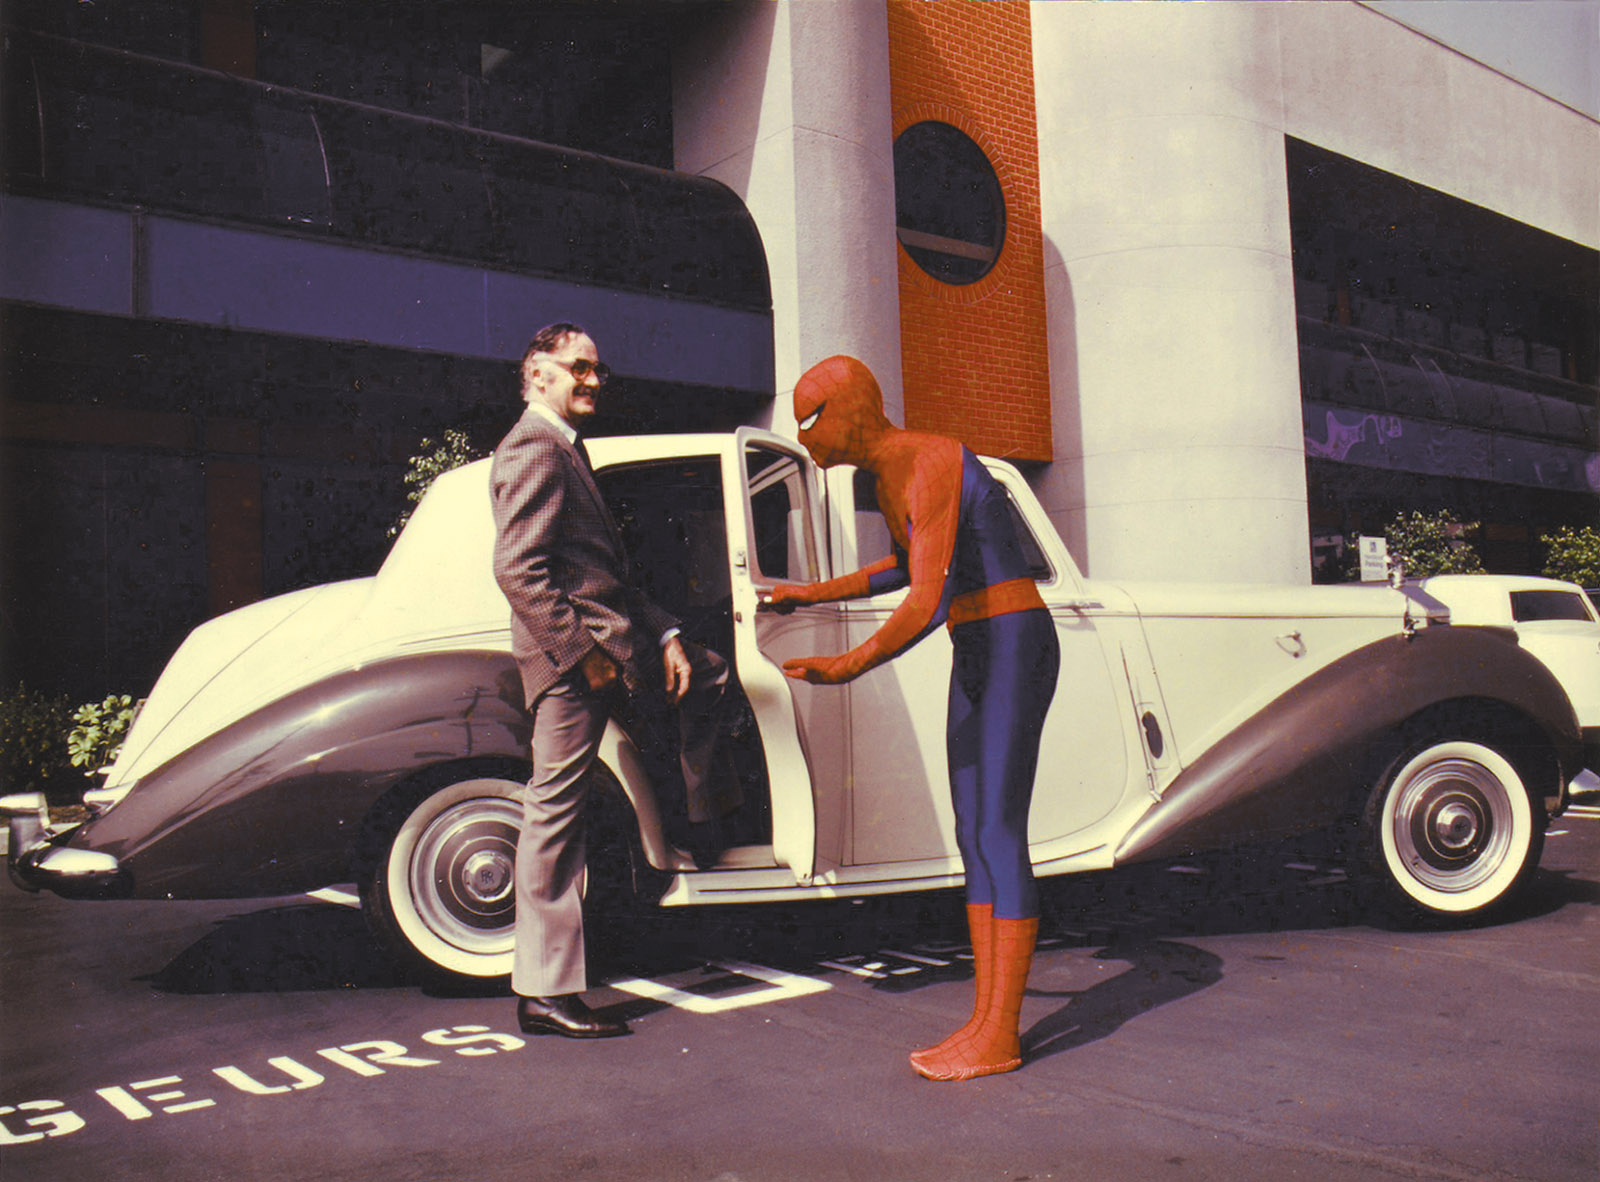 Stan Lee and a Marvel employee in Spider-man costume in the Marvel Productions parking lot